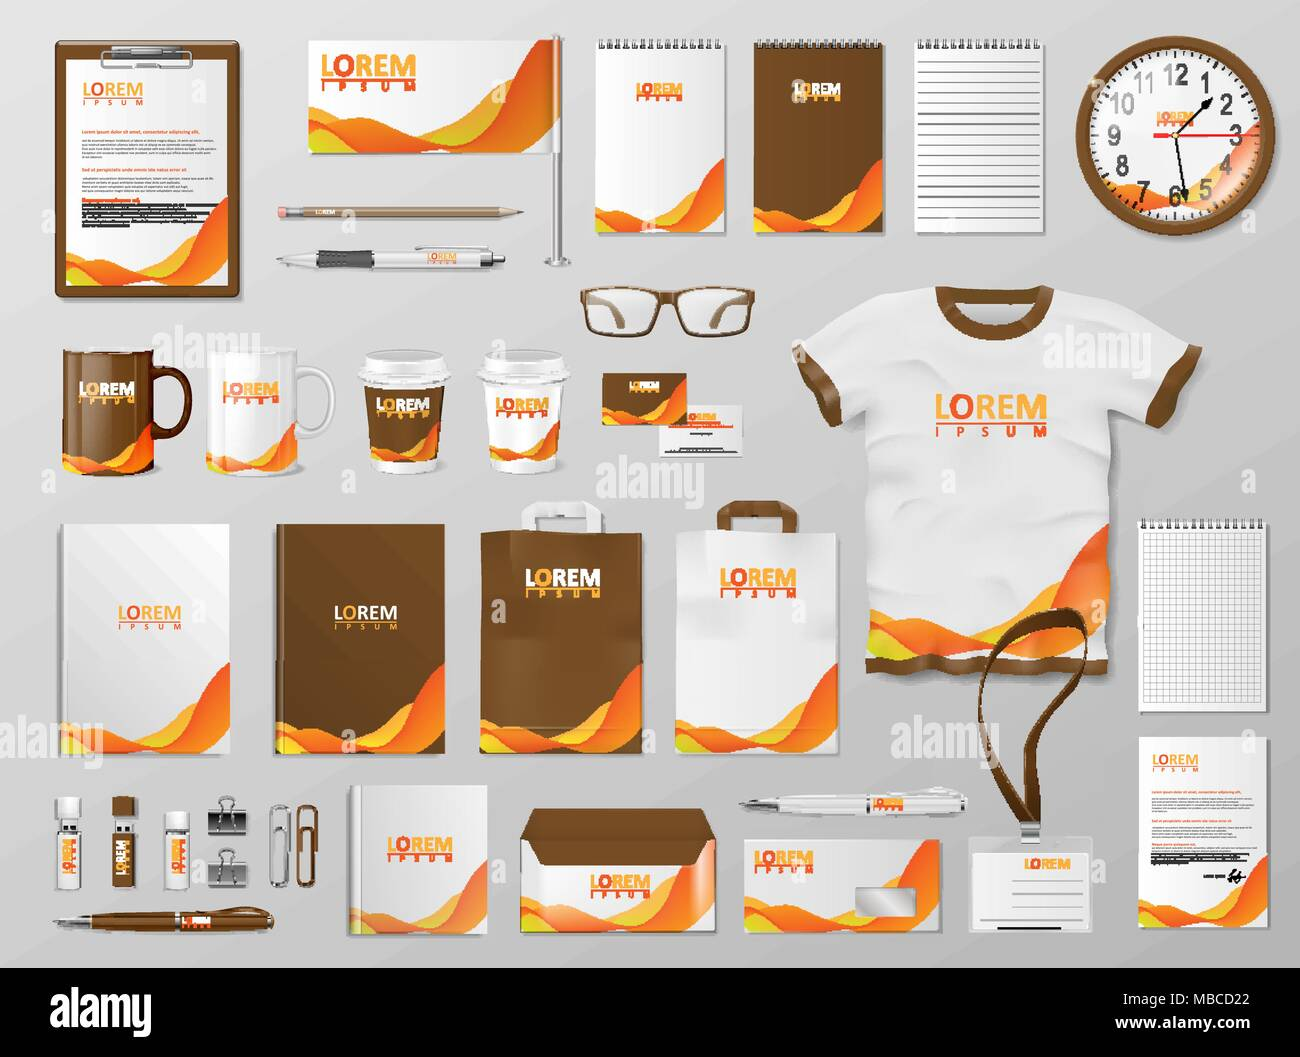 Corporate branding identity template design modern stationery corporate branding identity template design modern stationery mockup for shop with modern orange color business style stationery and documentation maxwellsz